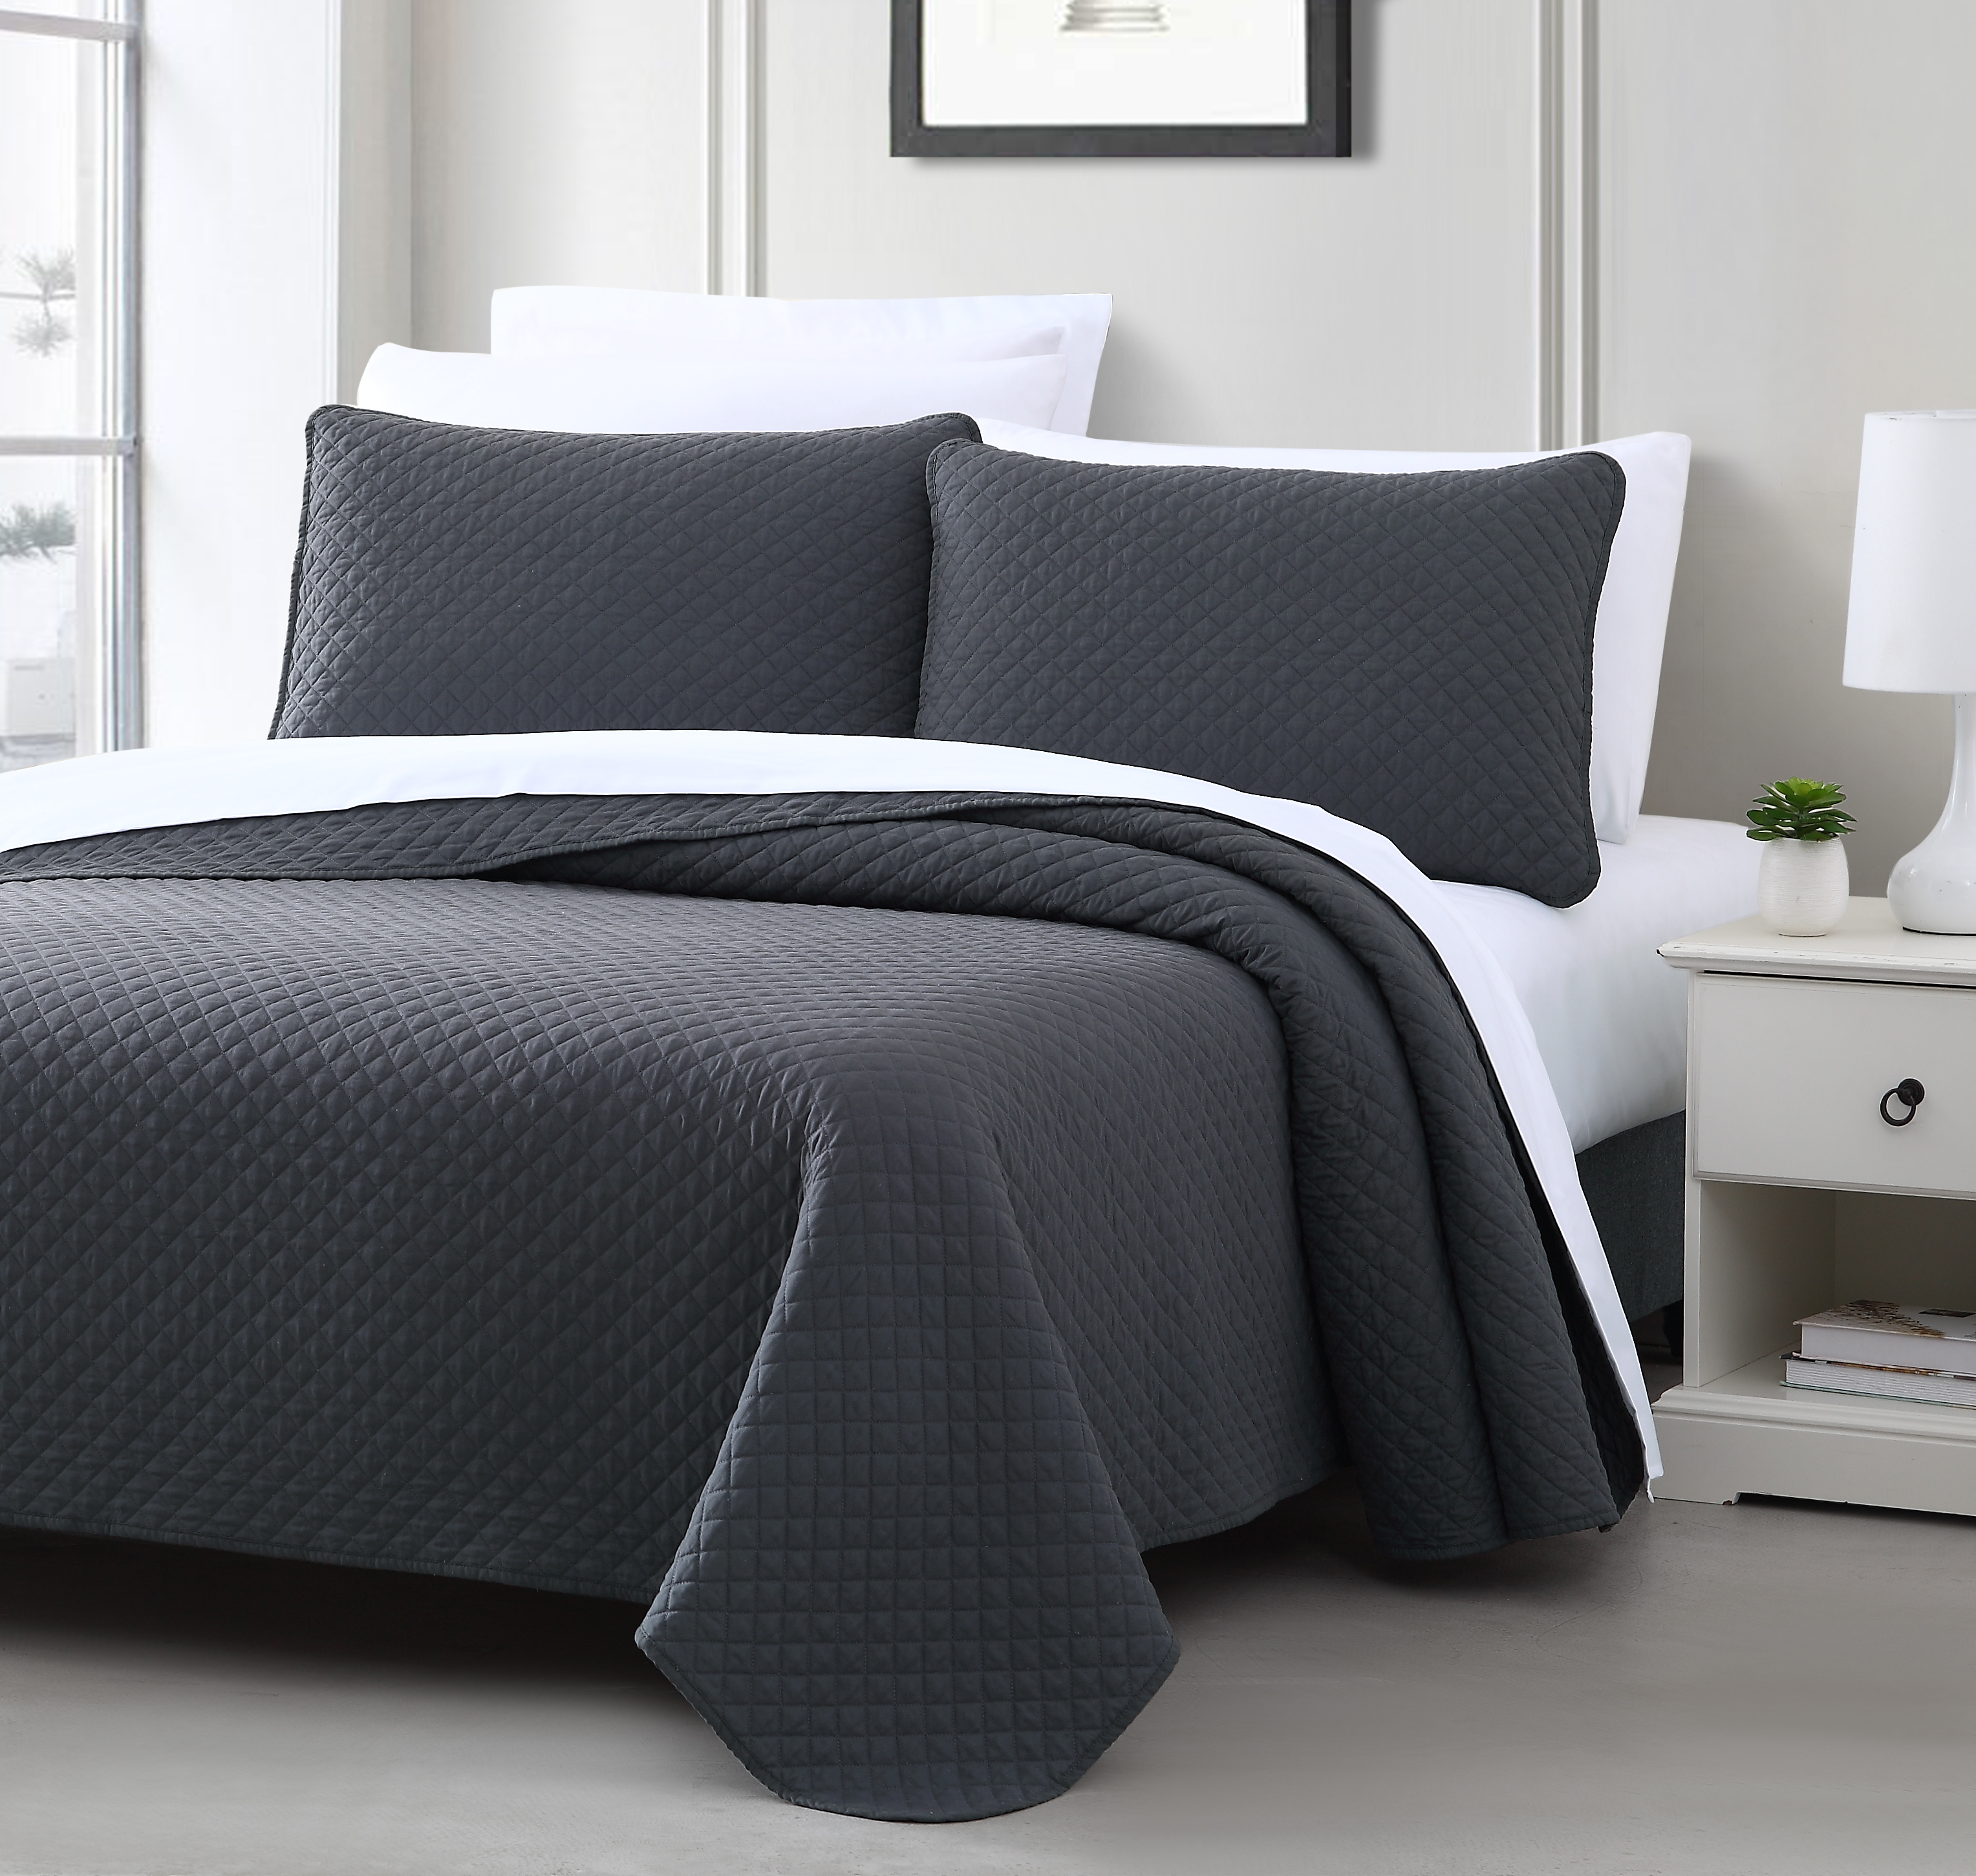 Cozy Beddings Quilted Coverlet Set Elliott Collection Bedspread PREWASHED Cover Set, Diamond Stitched Design, Microfabric Shell 100% Cotton Quilt